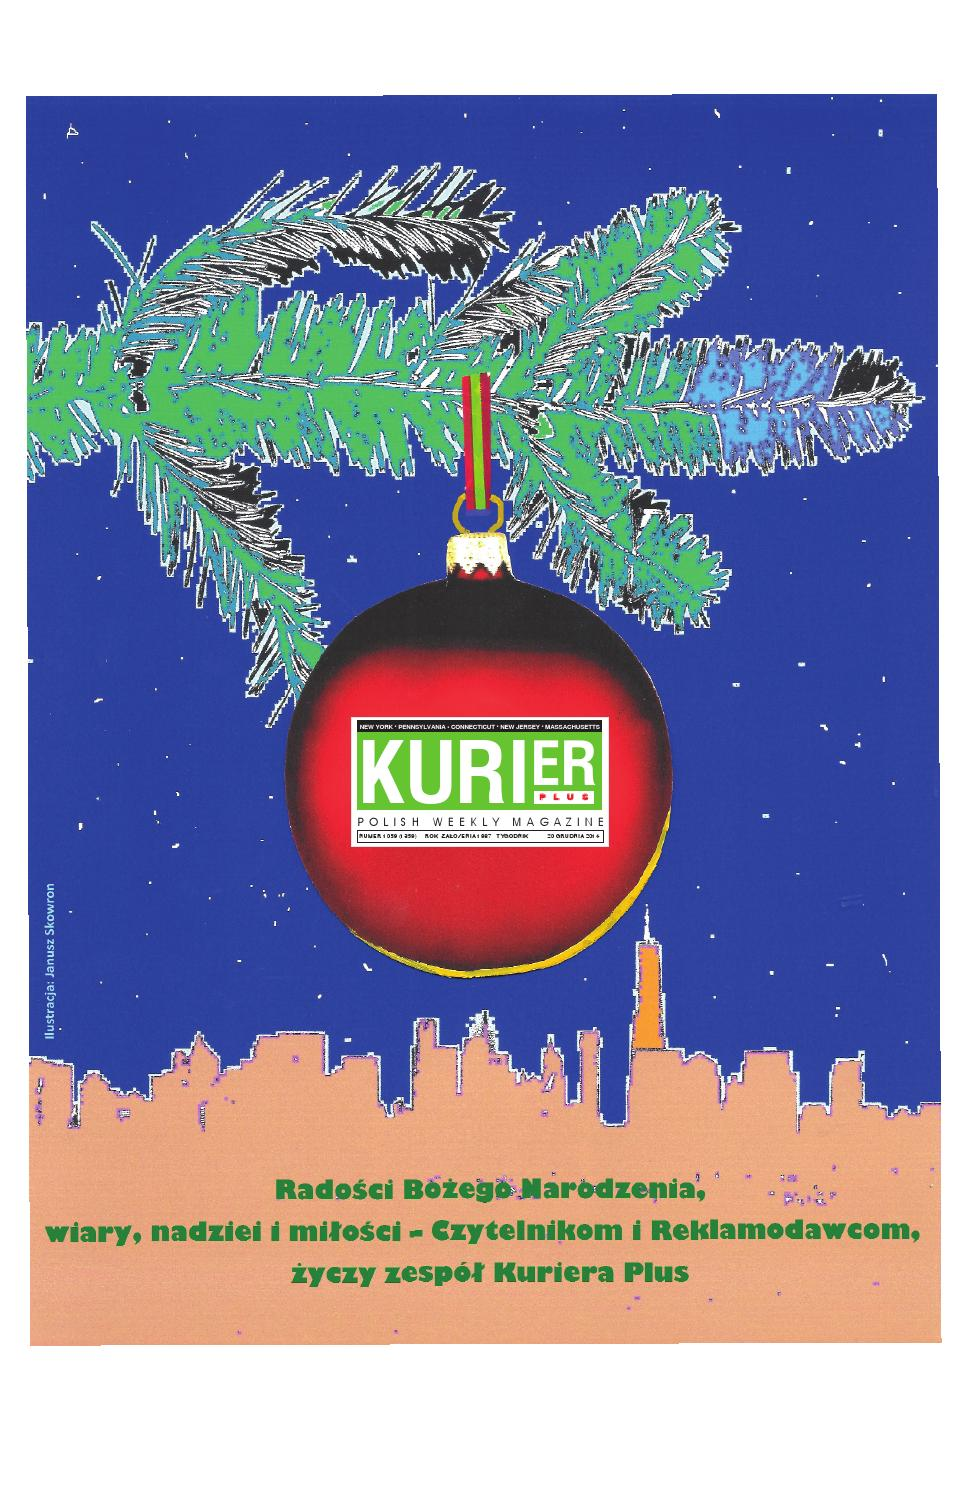 Kueir Plus 20 Grudnia 2014 By Kurier Plus Issuu